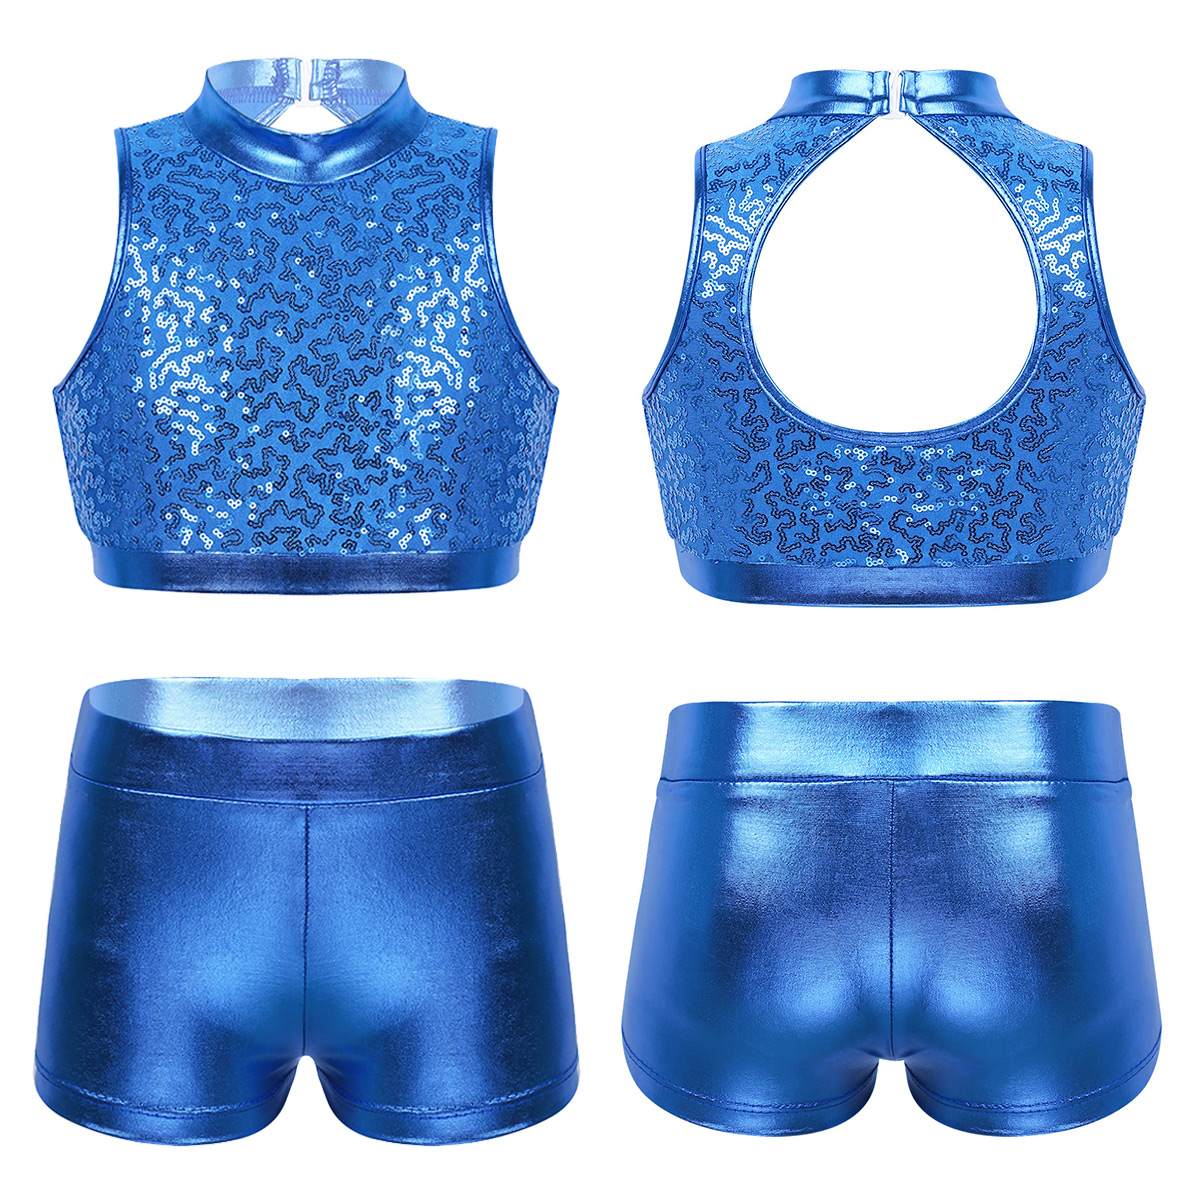 Sequins Kids Girls Jazz Dance Costumes Ballet Gymnastics Leotard Shorts Set For Birthday Gift Ballet Class Performance Clothes